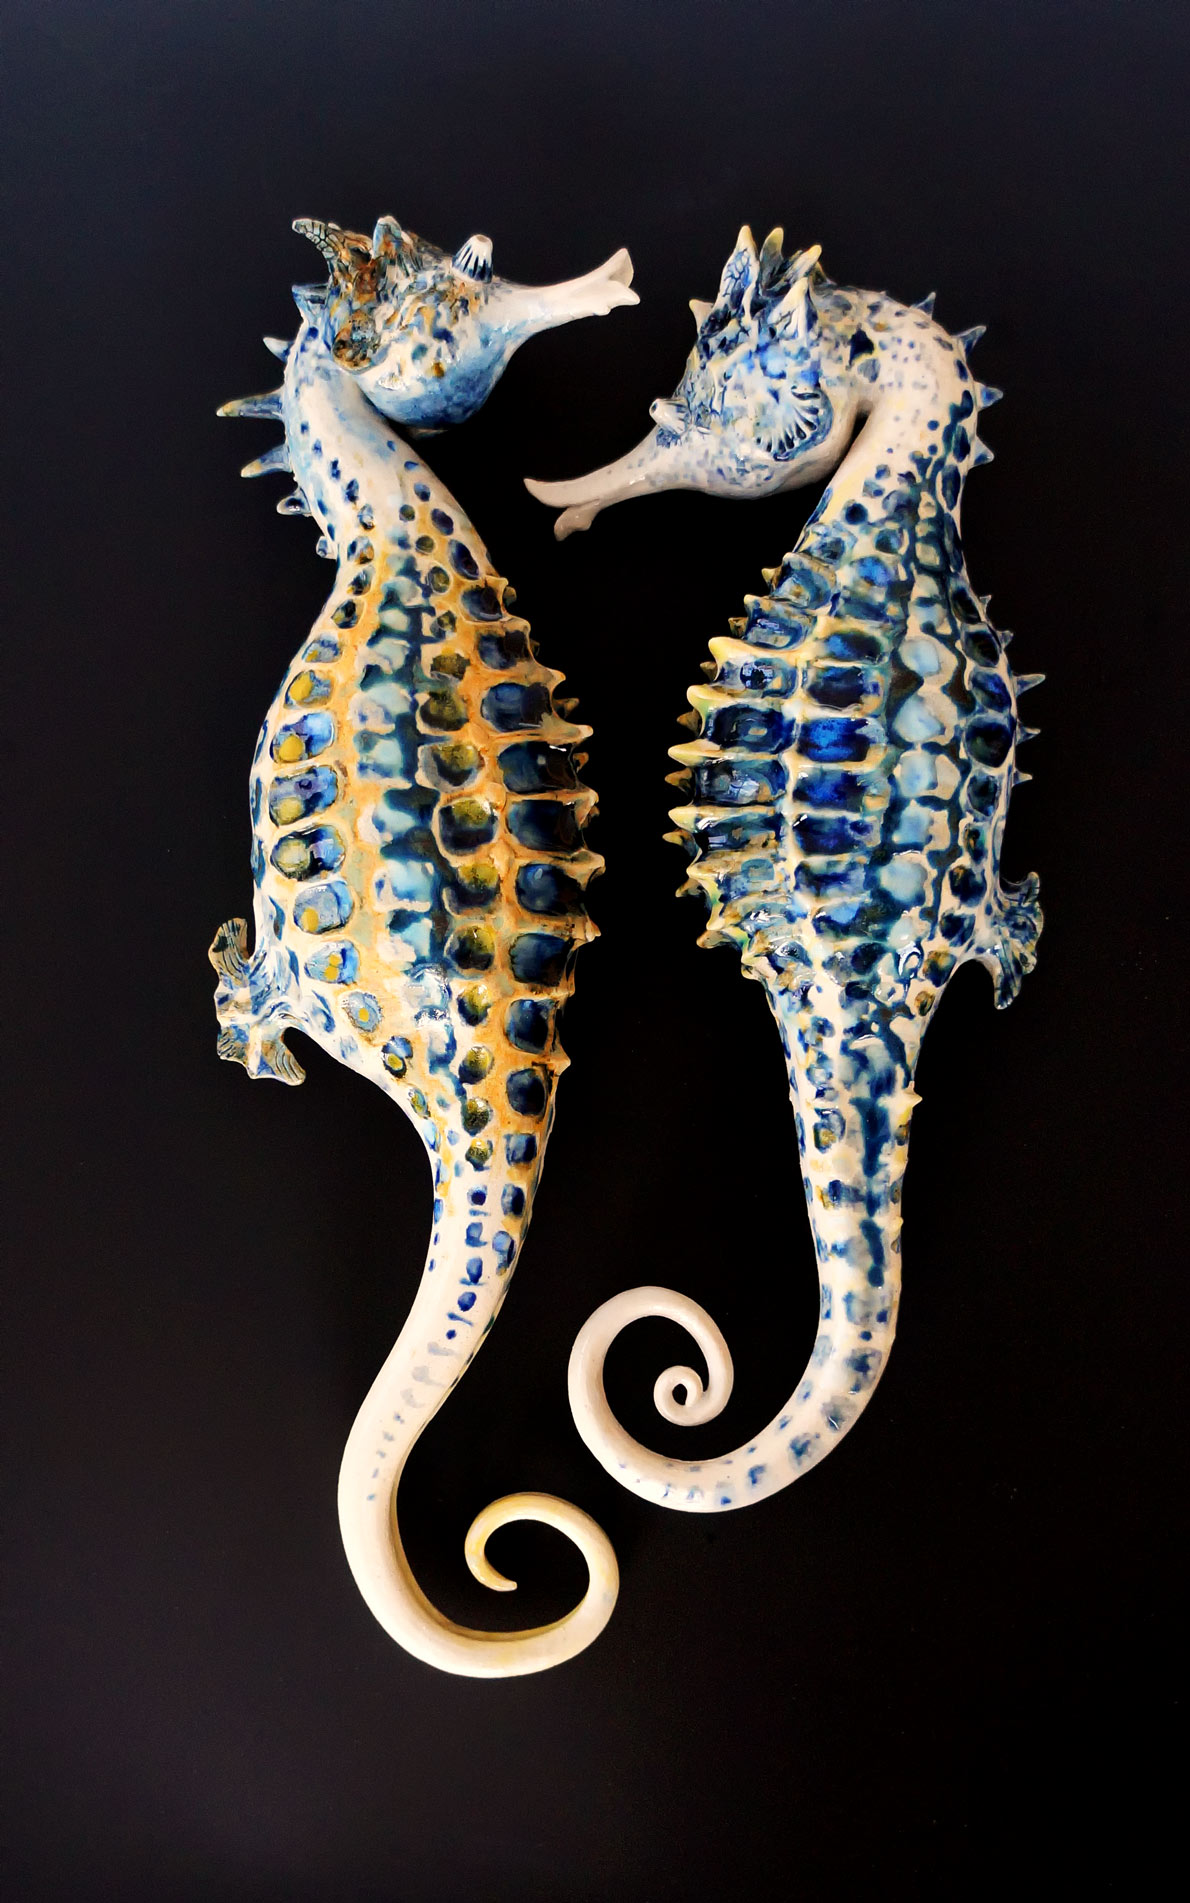 Wall Hanging Seahorse Couple. 21 inches long.